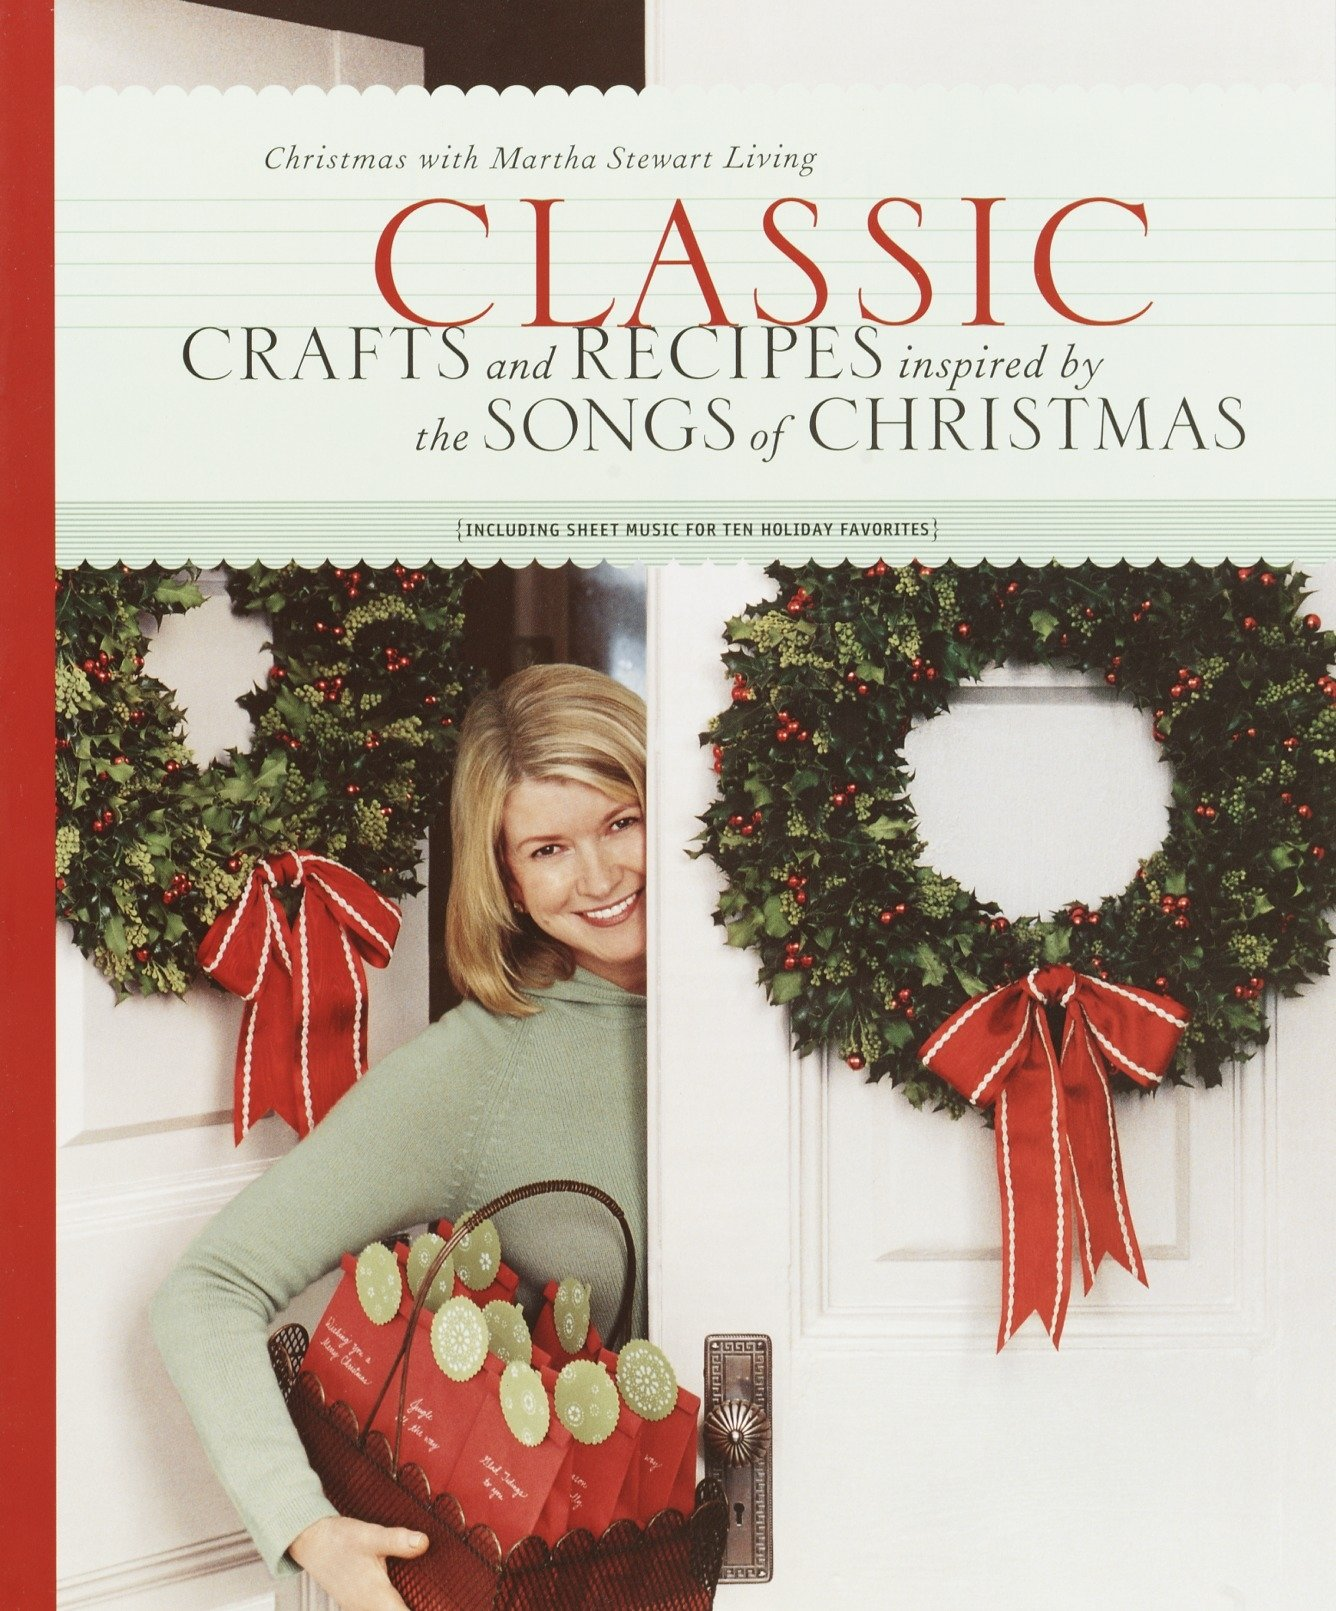 813MUUd6kqL - Classic Crafts and Recipes Inspired by the Songs of Christmas: Christmas With Martha Stewart Living